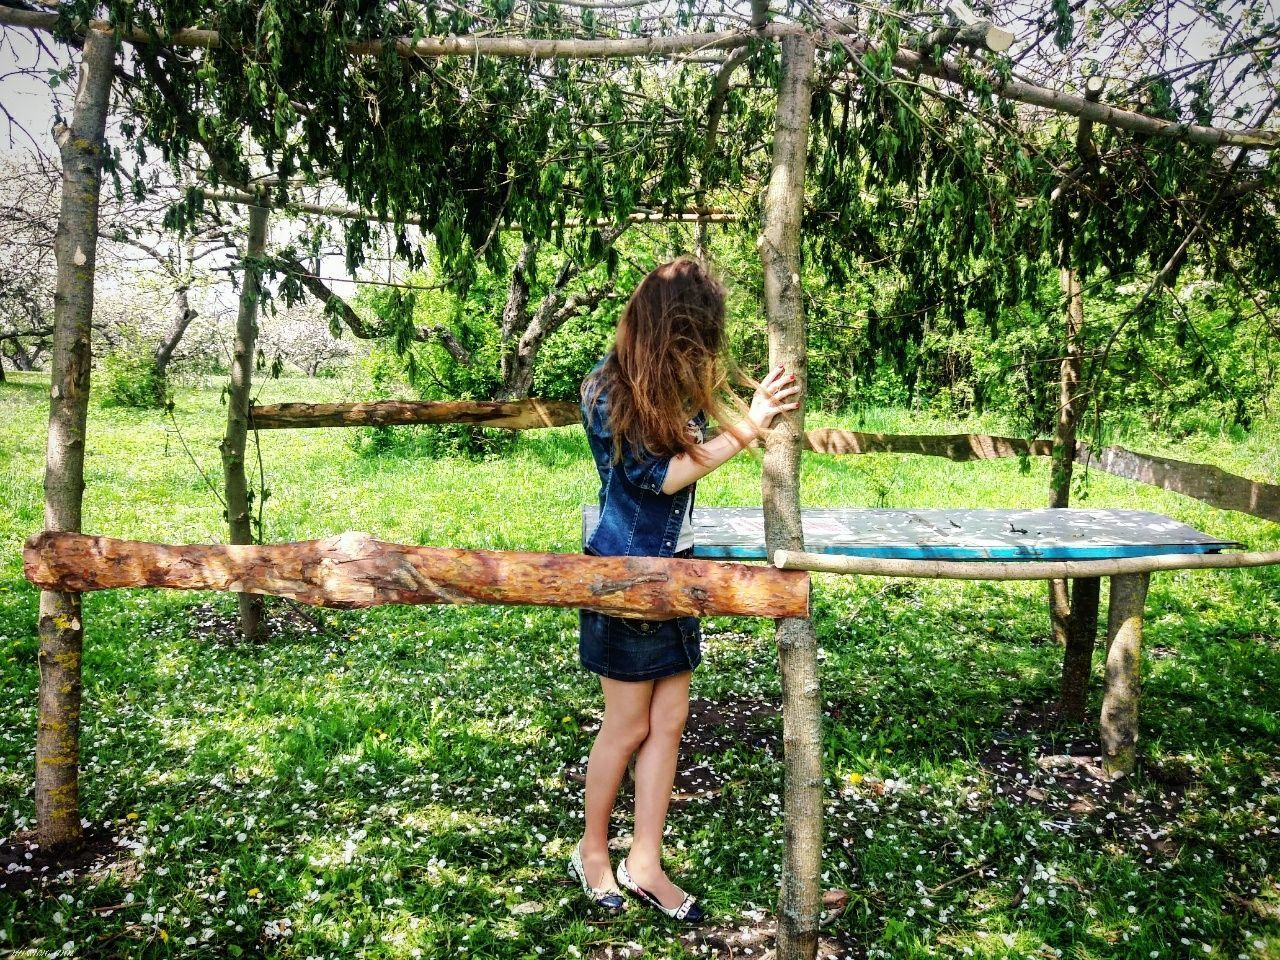 tree, full length, one person, real people, grass, day, standing, casual clothing, leisure activity, nature, outdoors, lifestyles, water, young adult, people